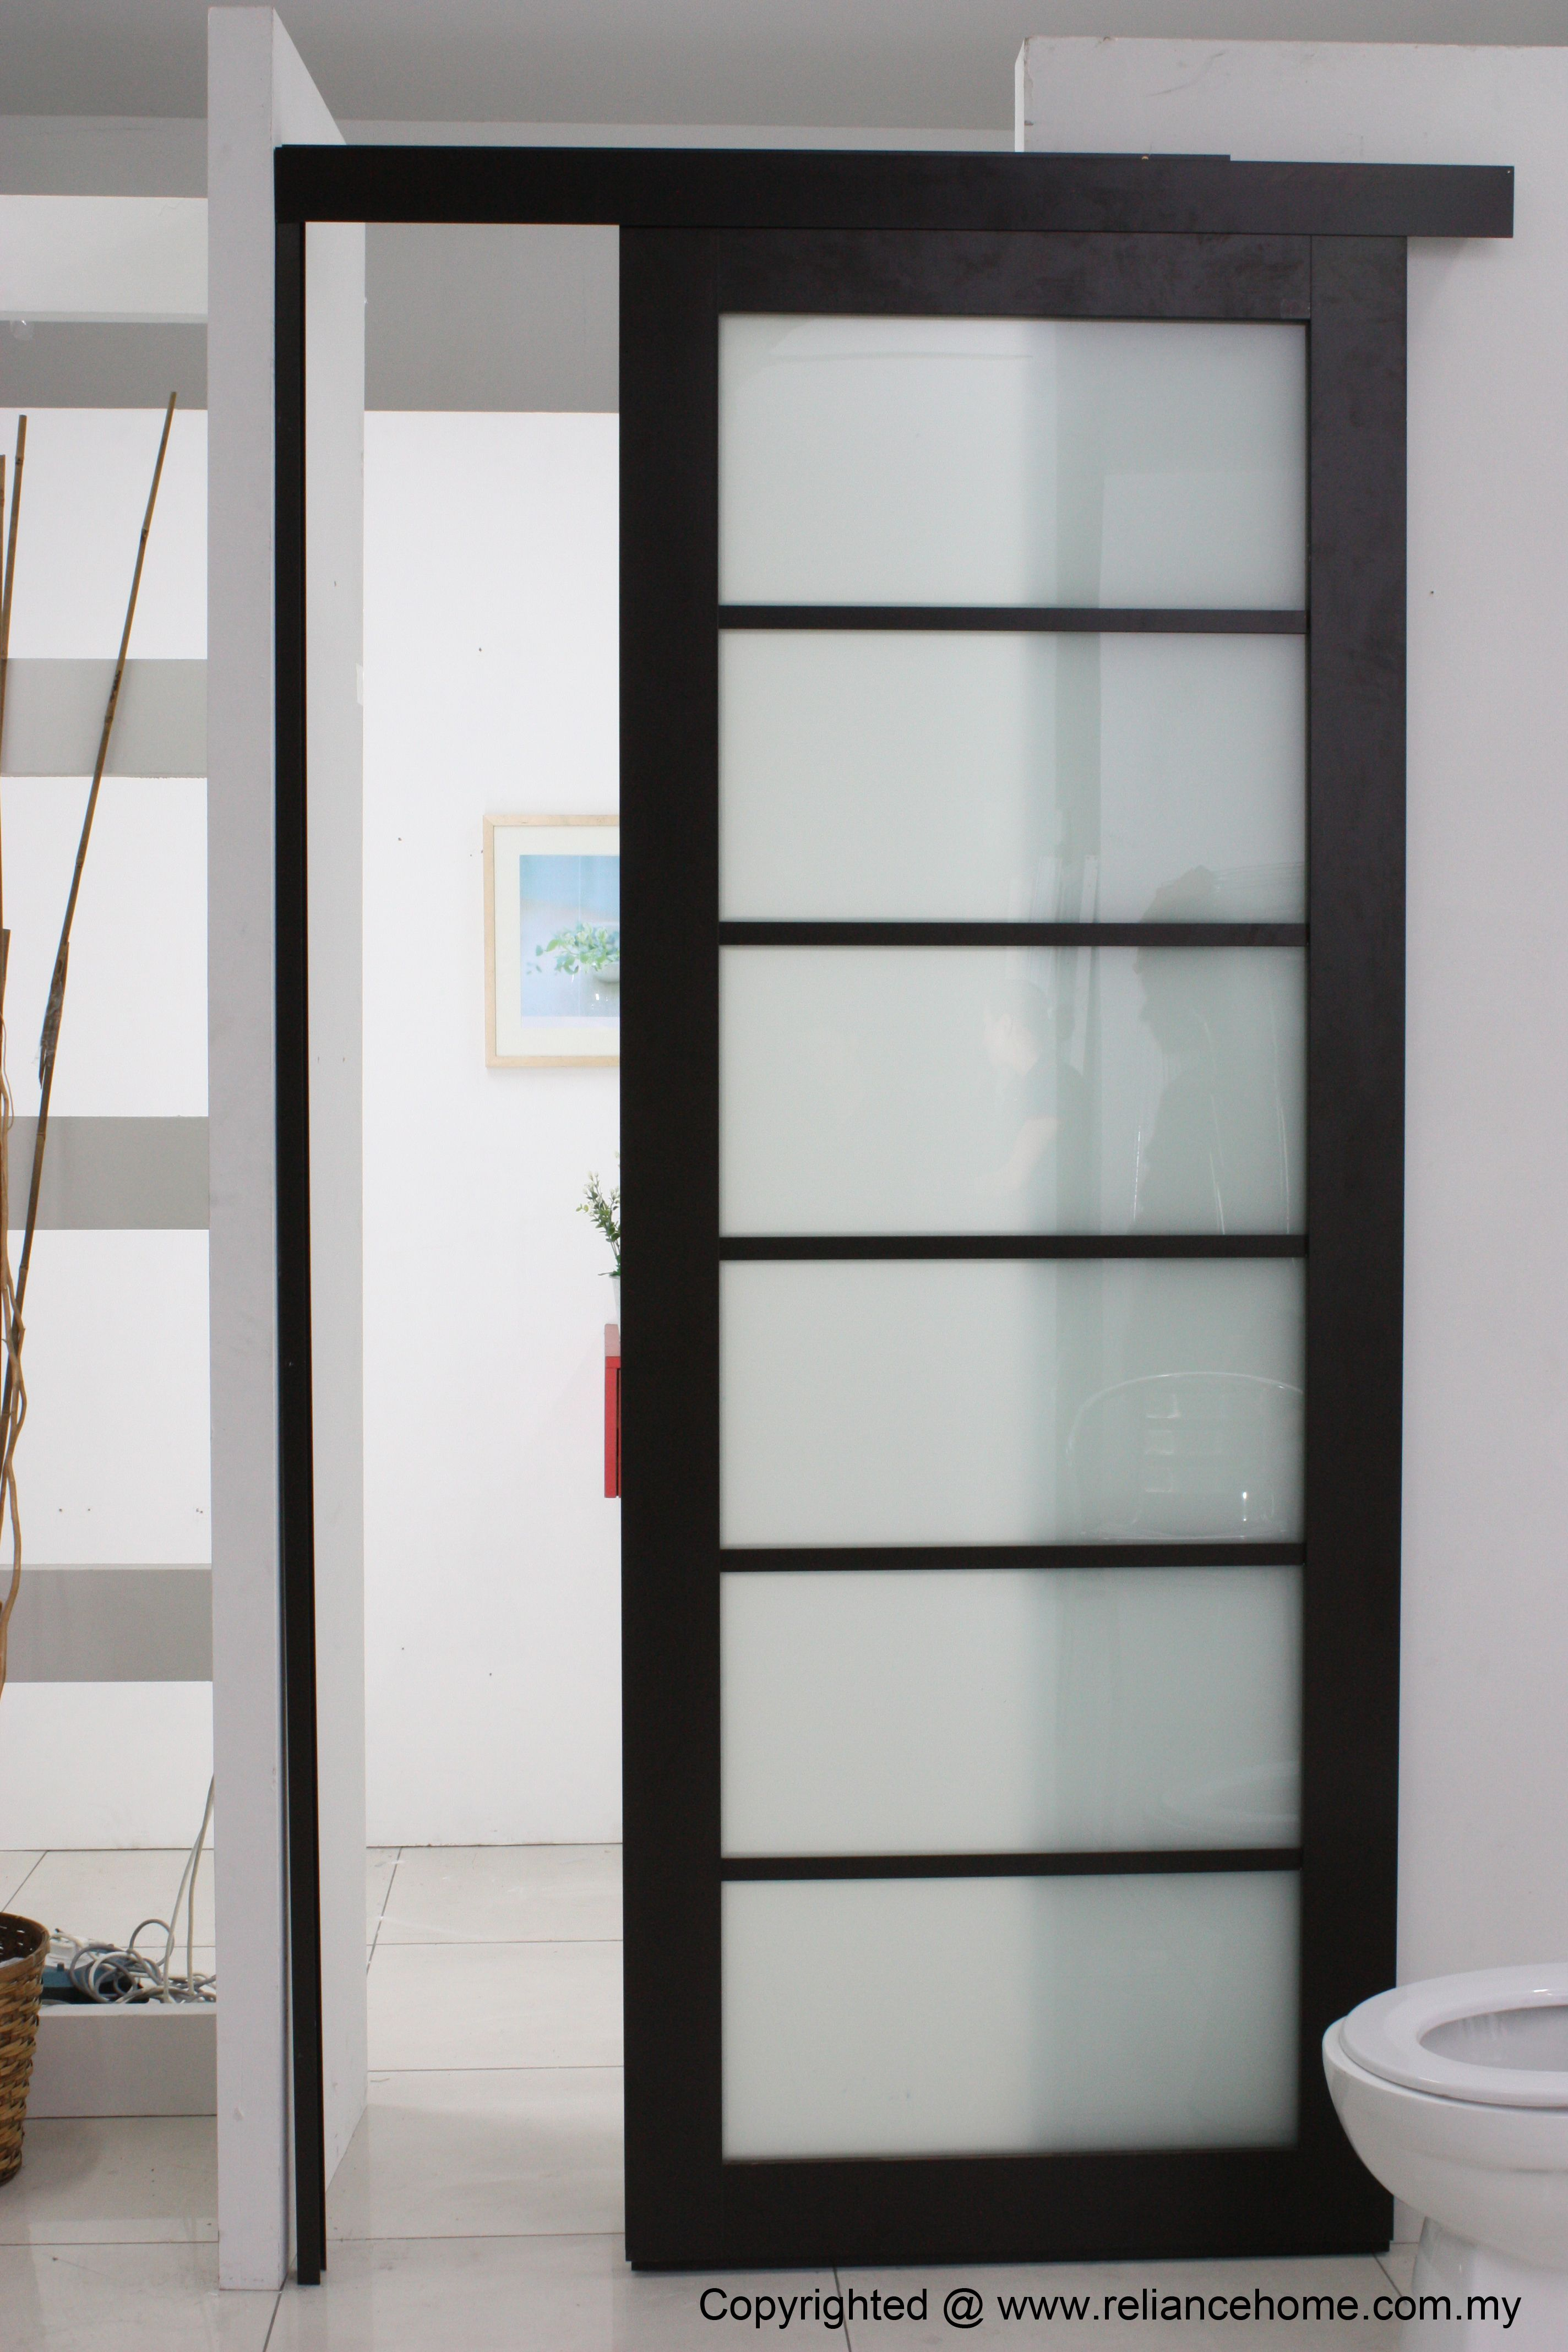 Nice Looking Frosted Sliding Single Bathroom Doors For Minimalist Bathroom Decors In White